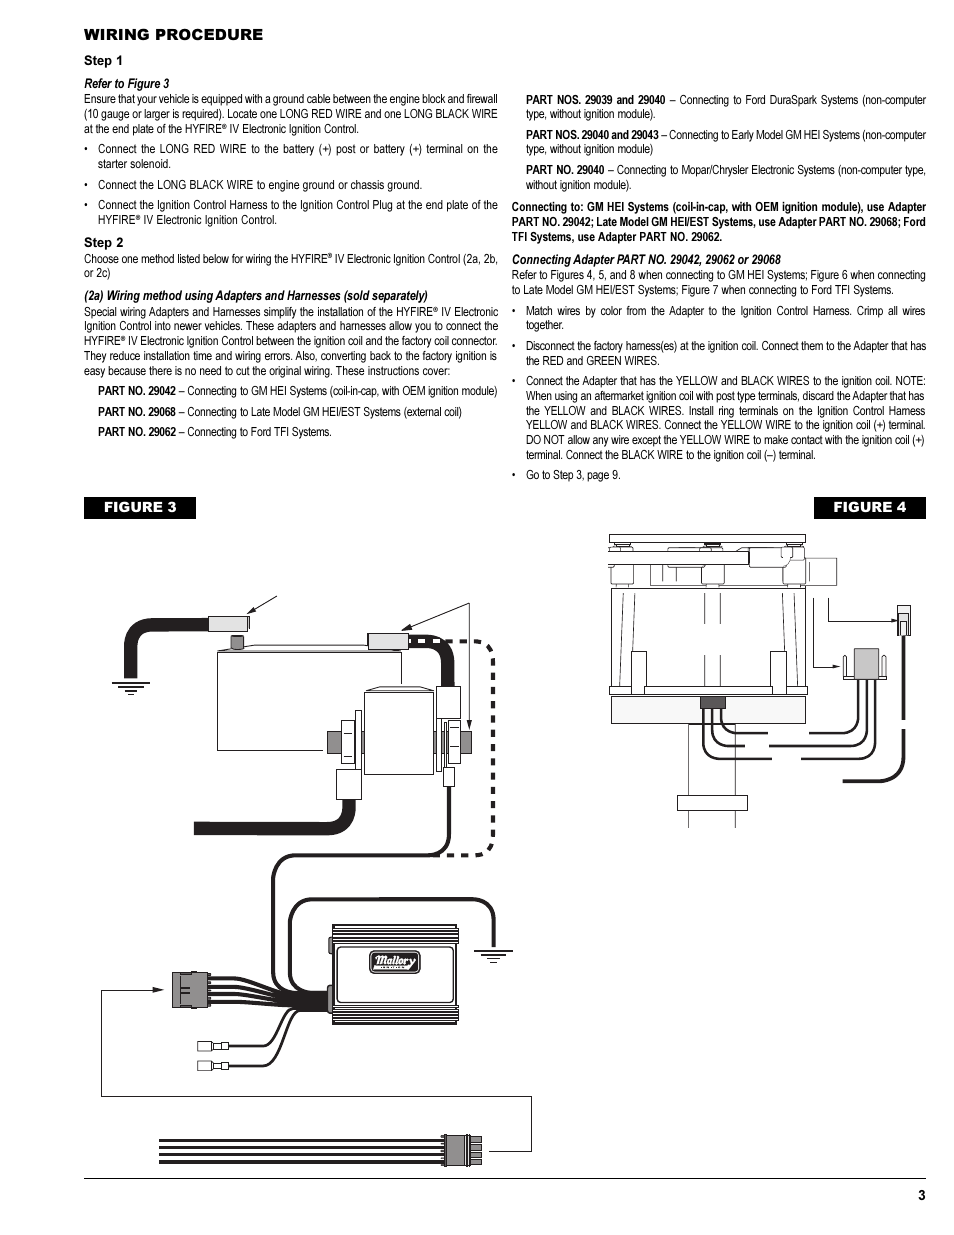 mallory hyfire wiring diagram for cj7 wiring procedure, figure 4, 12v/battery (+) | mallory ... mallory hyfire6a wiring diagram #14